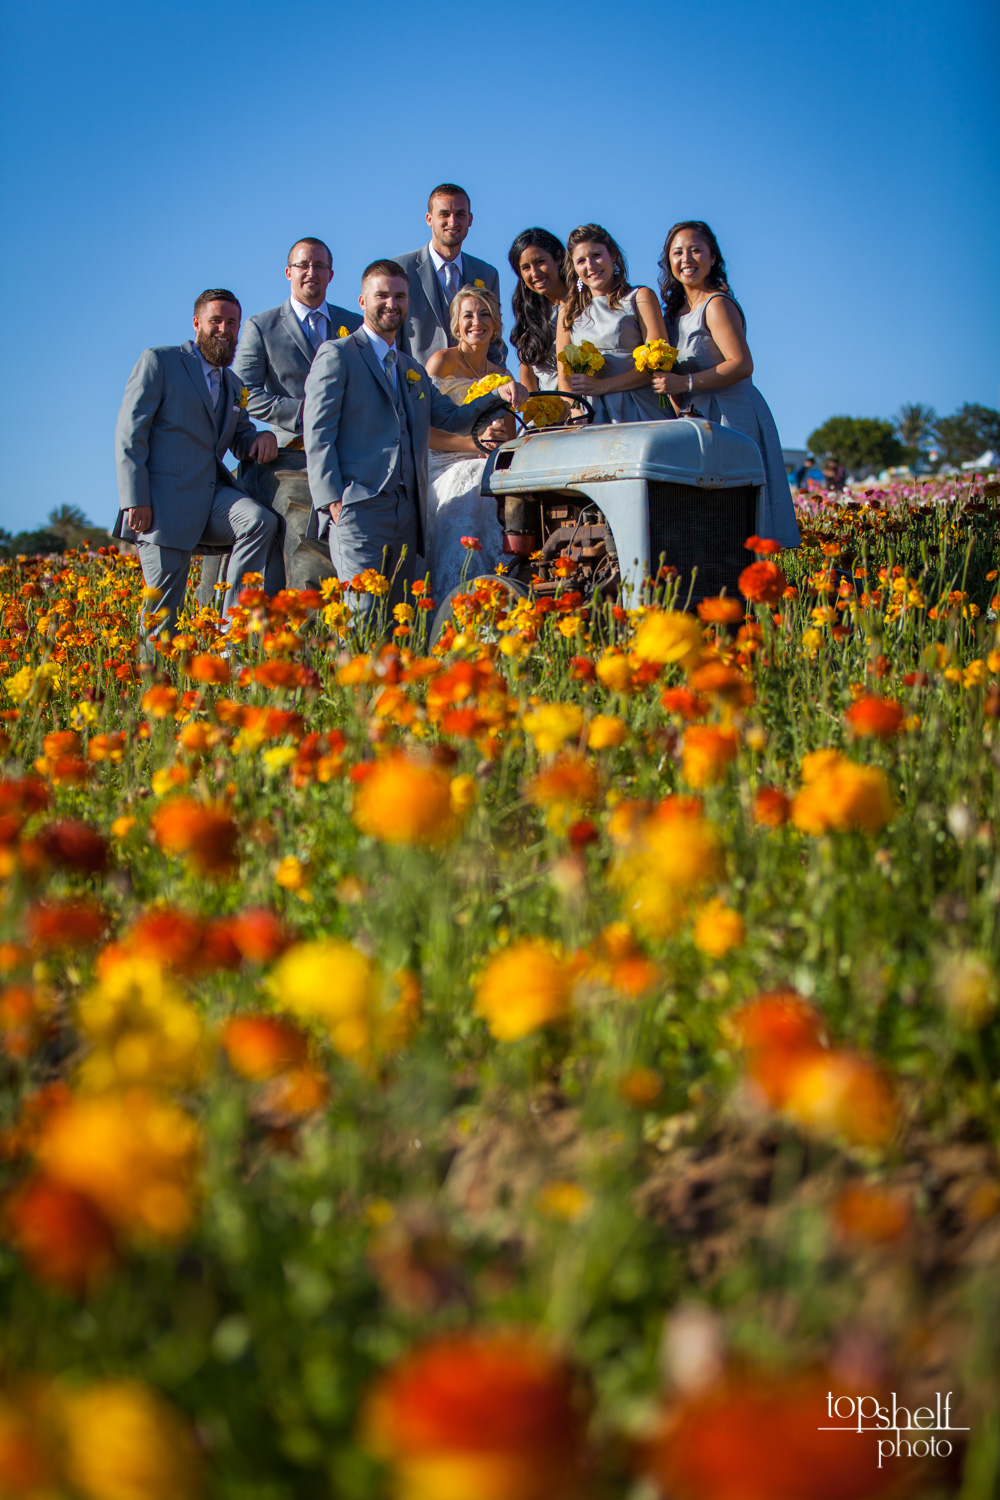 carlsbad-flower-fields-wedding-san-diego-top-shelf-photo-9.jpg